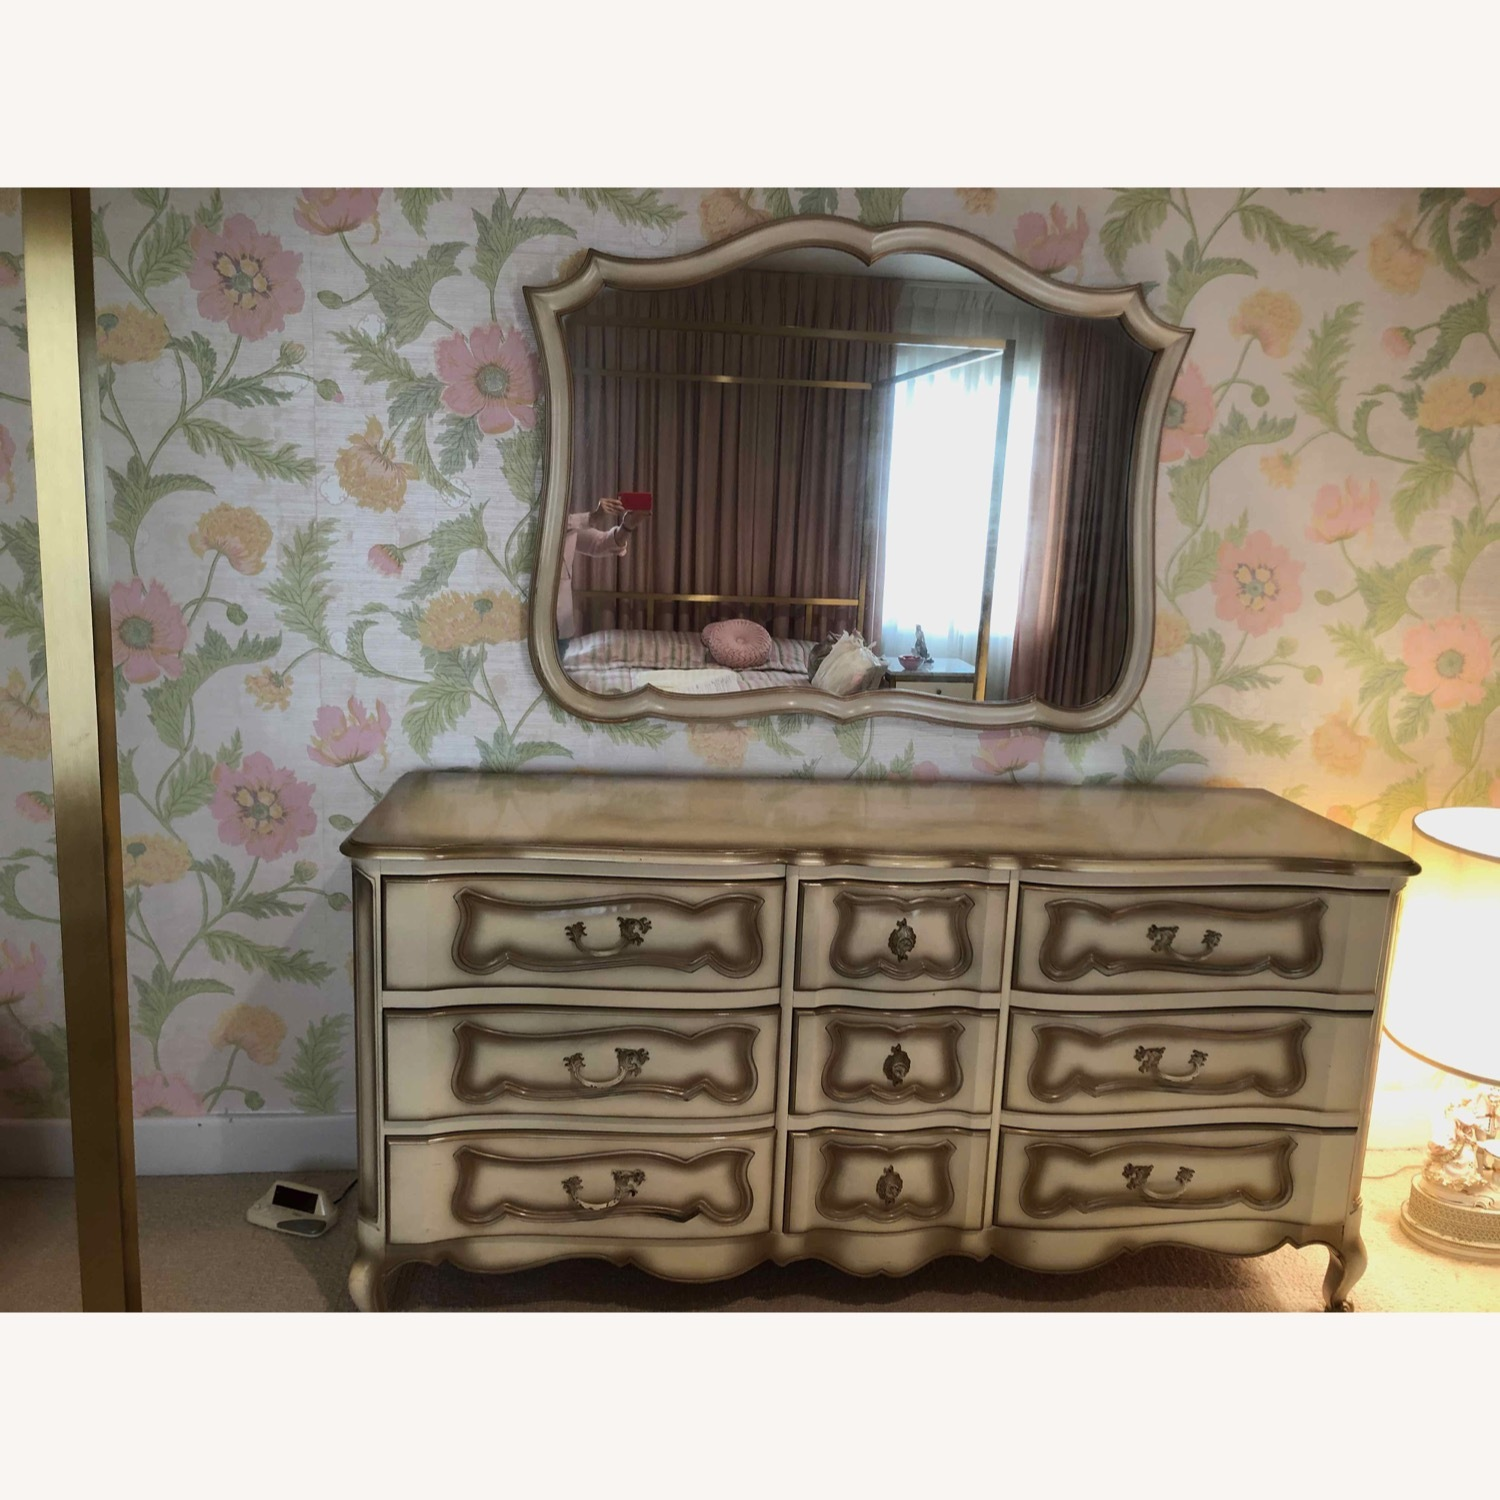 French Provincial Dresser and Matching Mirror - image-2